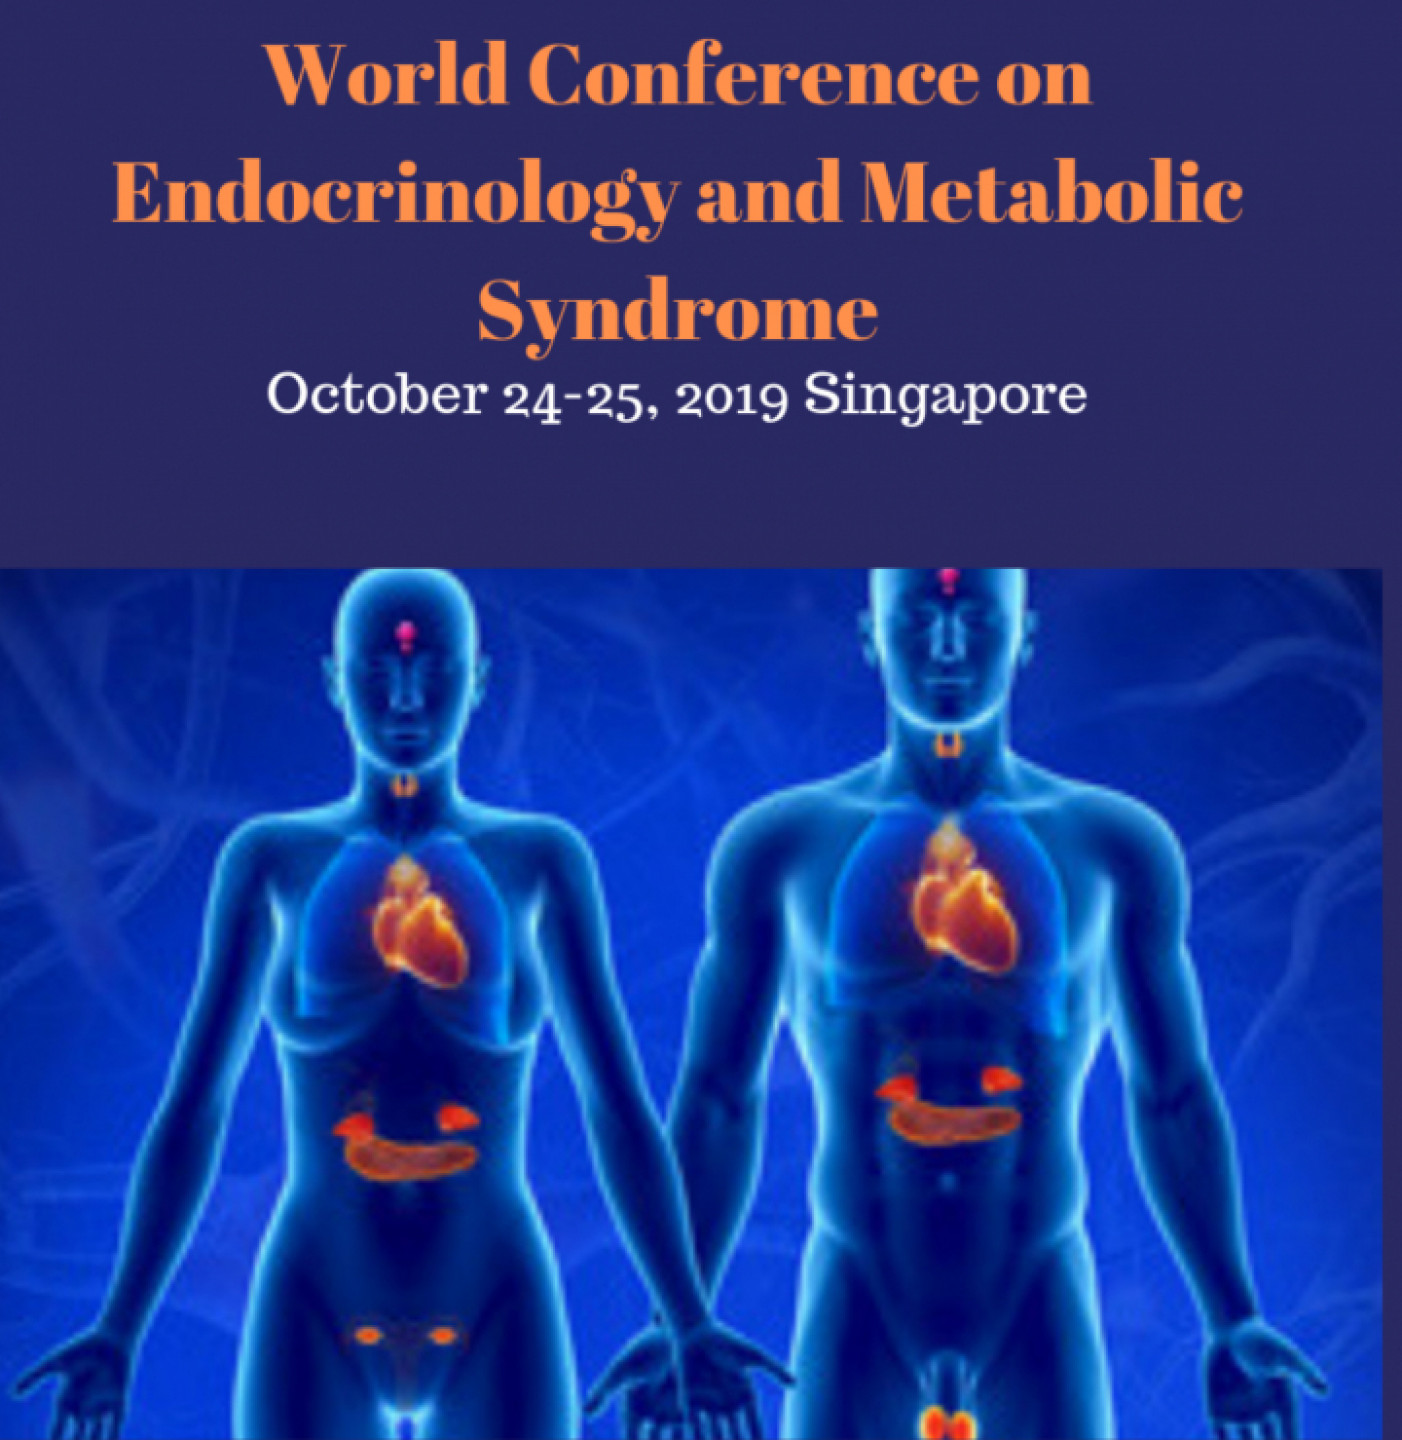 World Congress on Endocrinology and Metabolic Syndrome